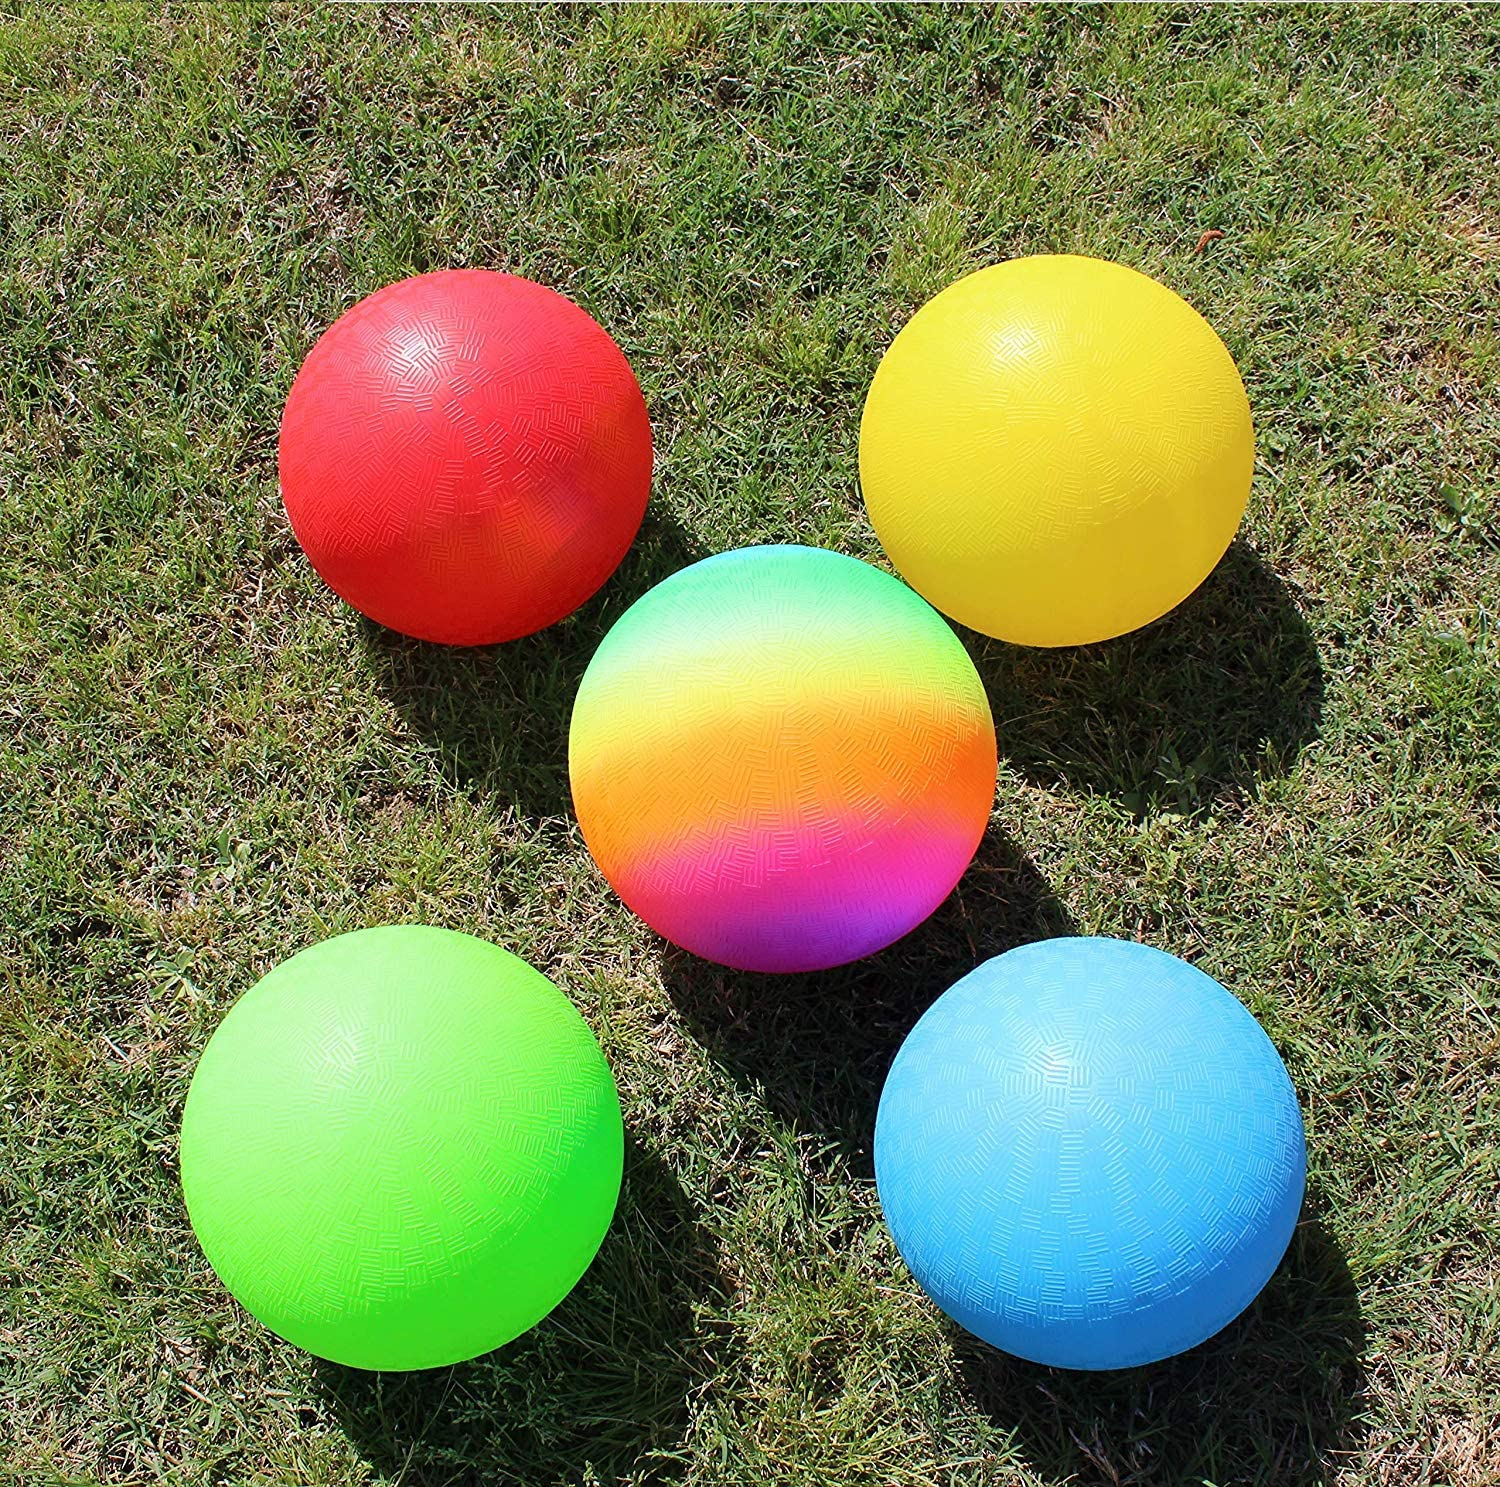 butterfunny 4 Pack 9 Playground Balls Dodgeball Kickball Outdoor Ball for Kids and Adults